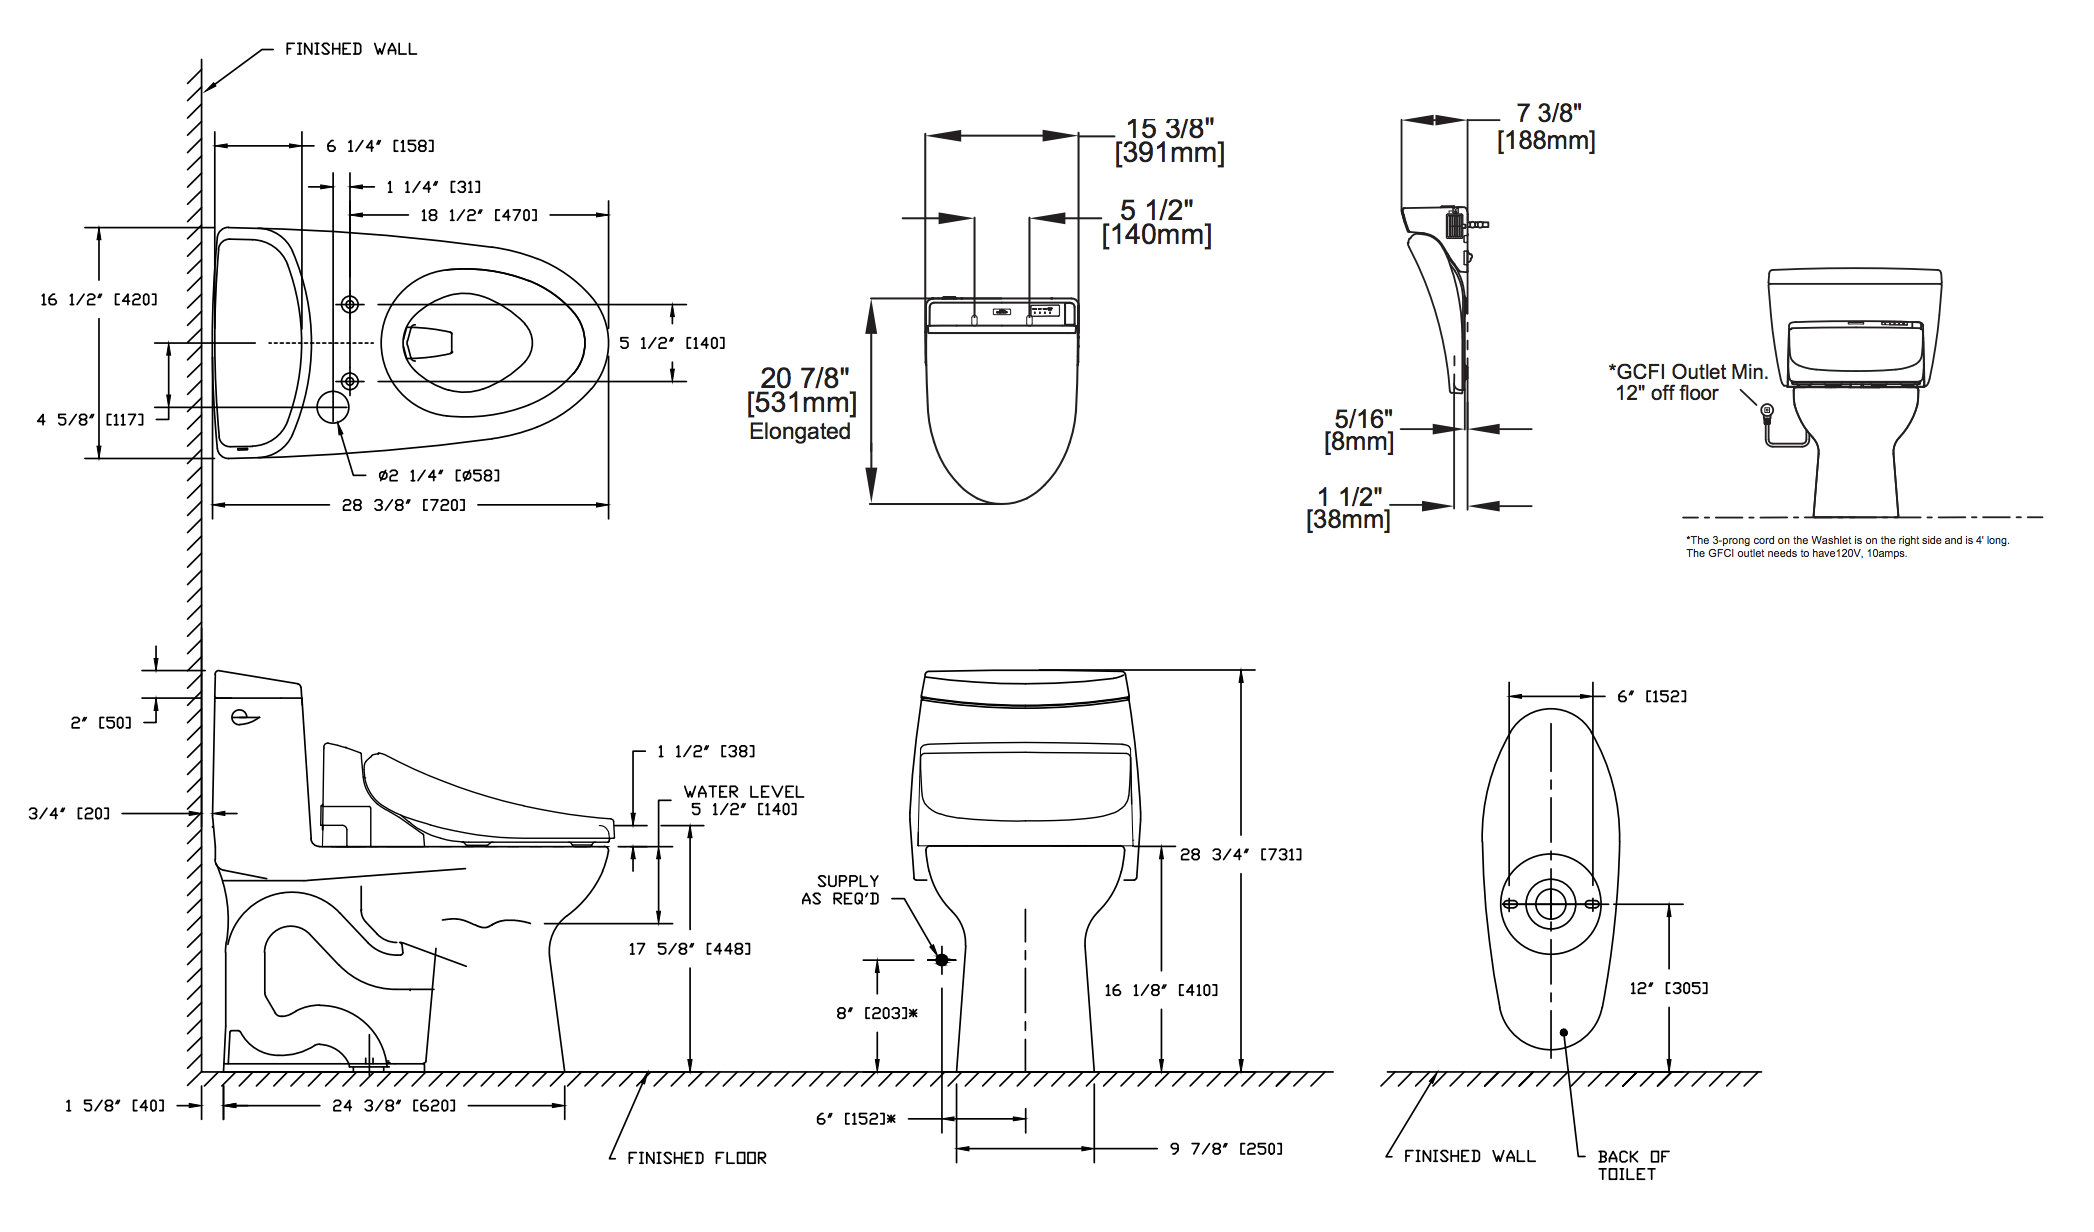 toto-ultramax-ii-washlet-c200-one-piece-toilet-and-bidet-system-1.28-gpf-diagram.png